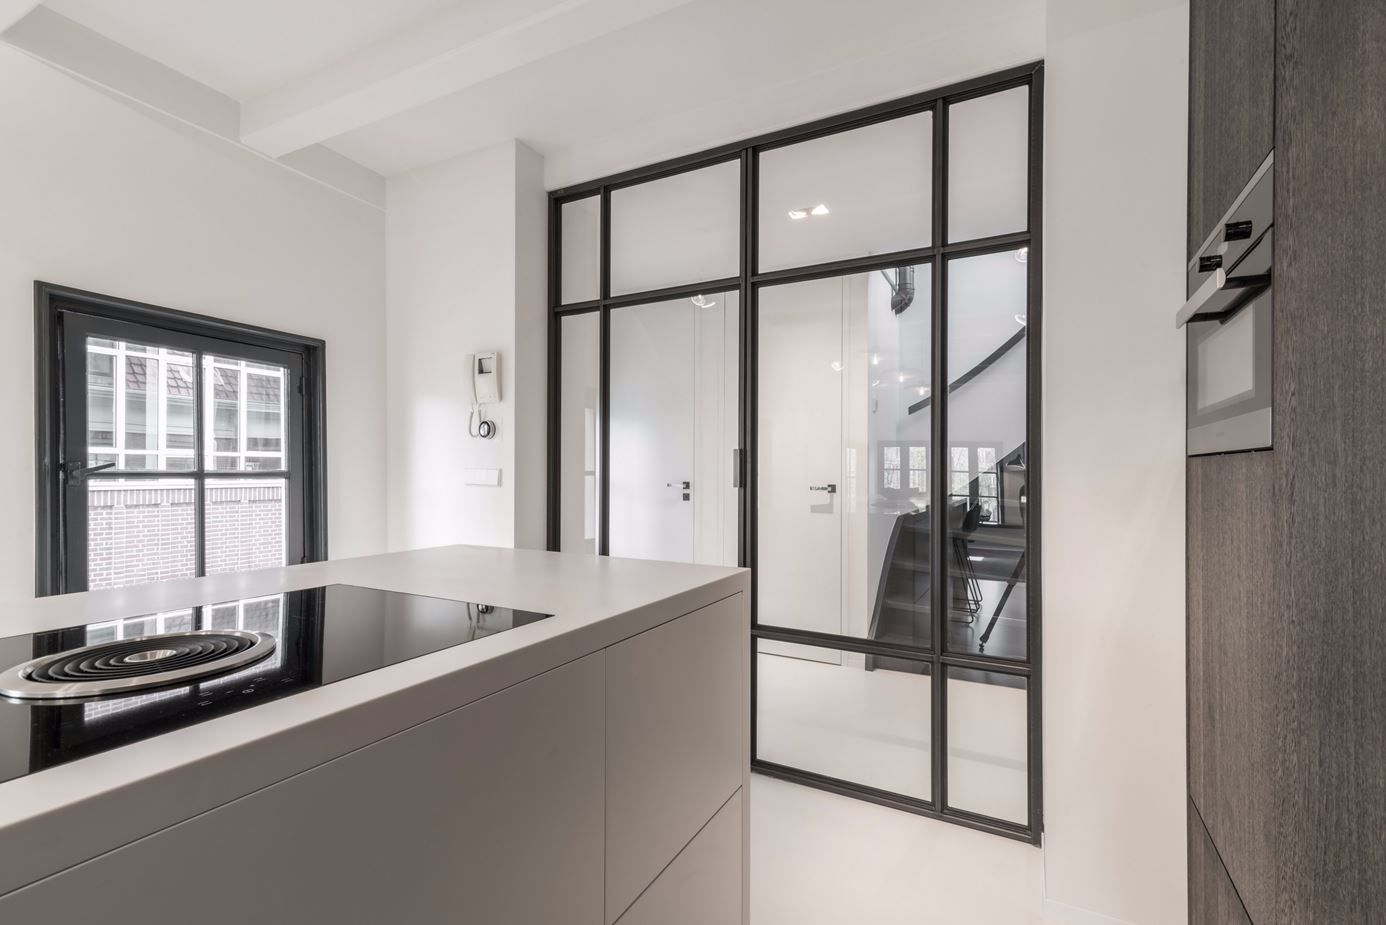 The iron frames are a common element throughout the home.